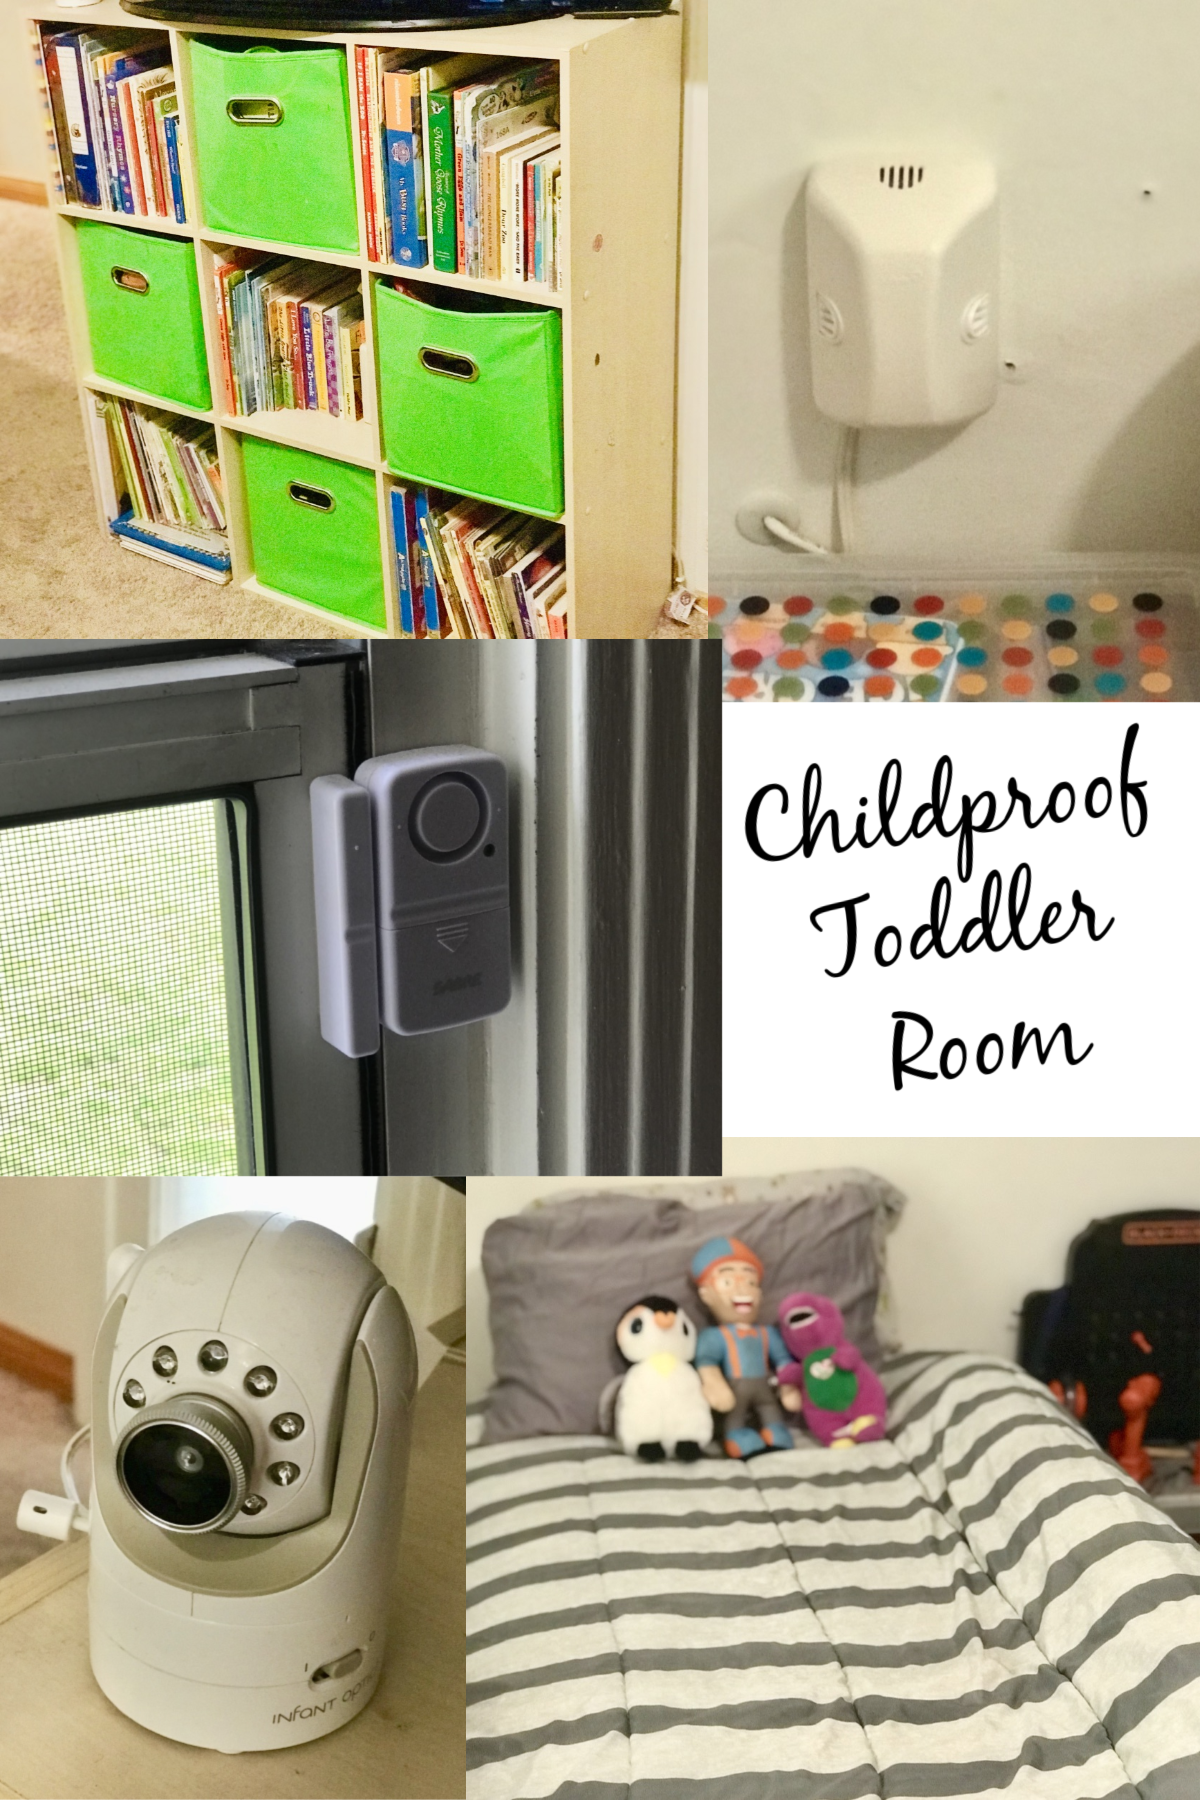 Childproof Toddler Room